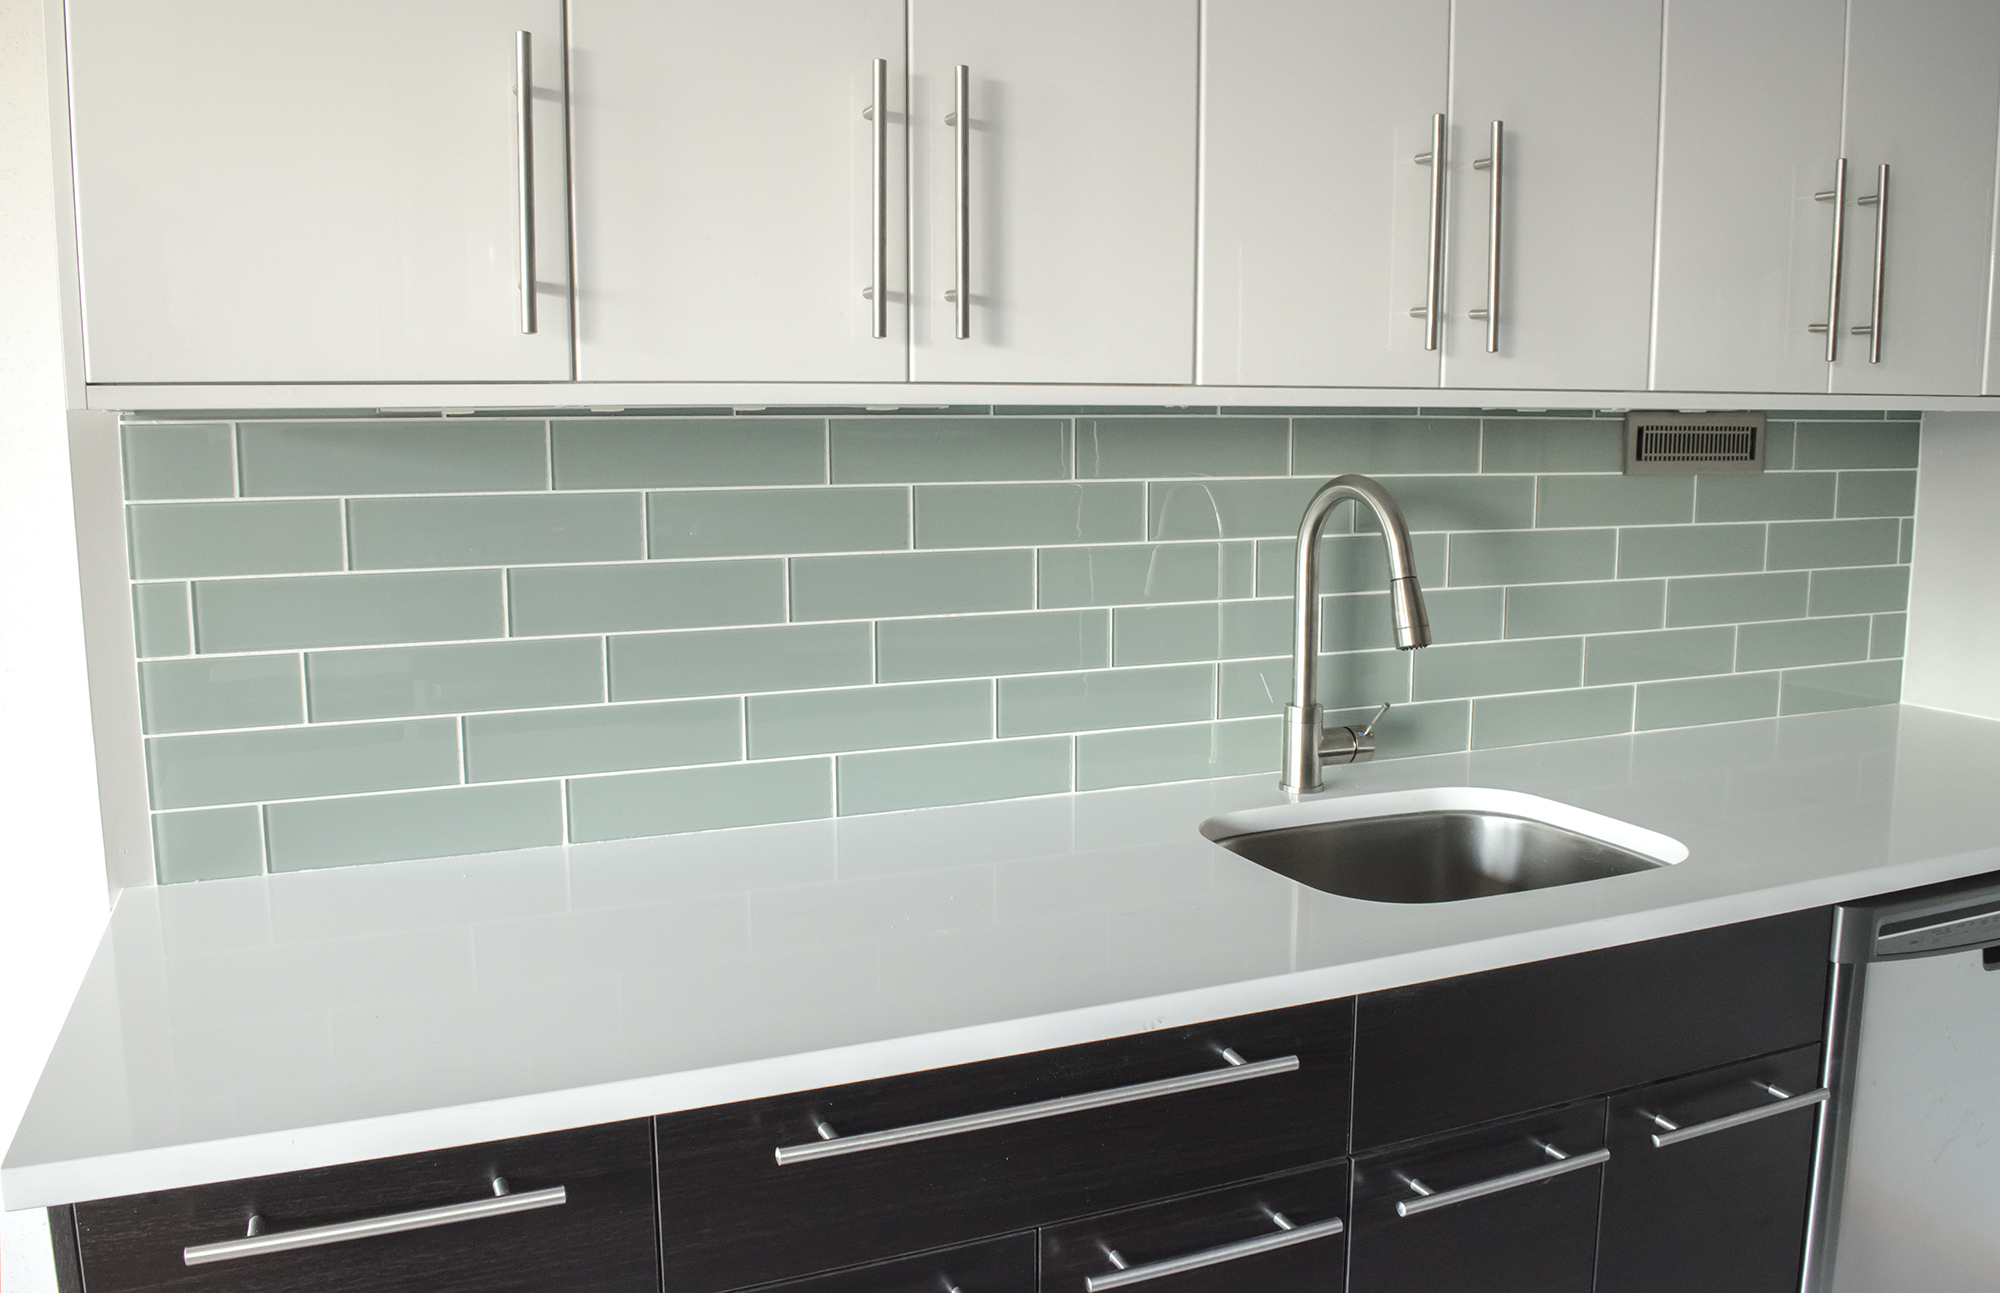 Brick Backsplash in Kitchen